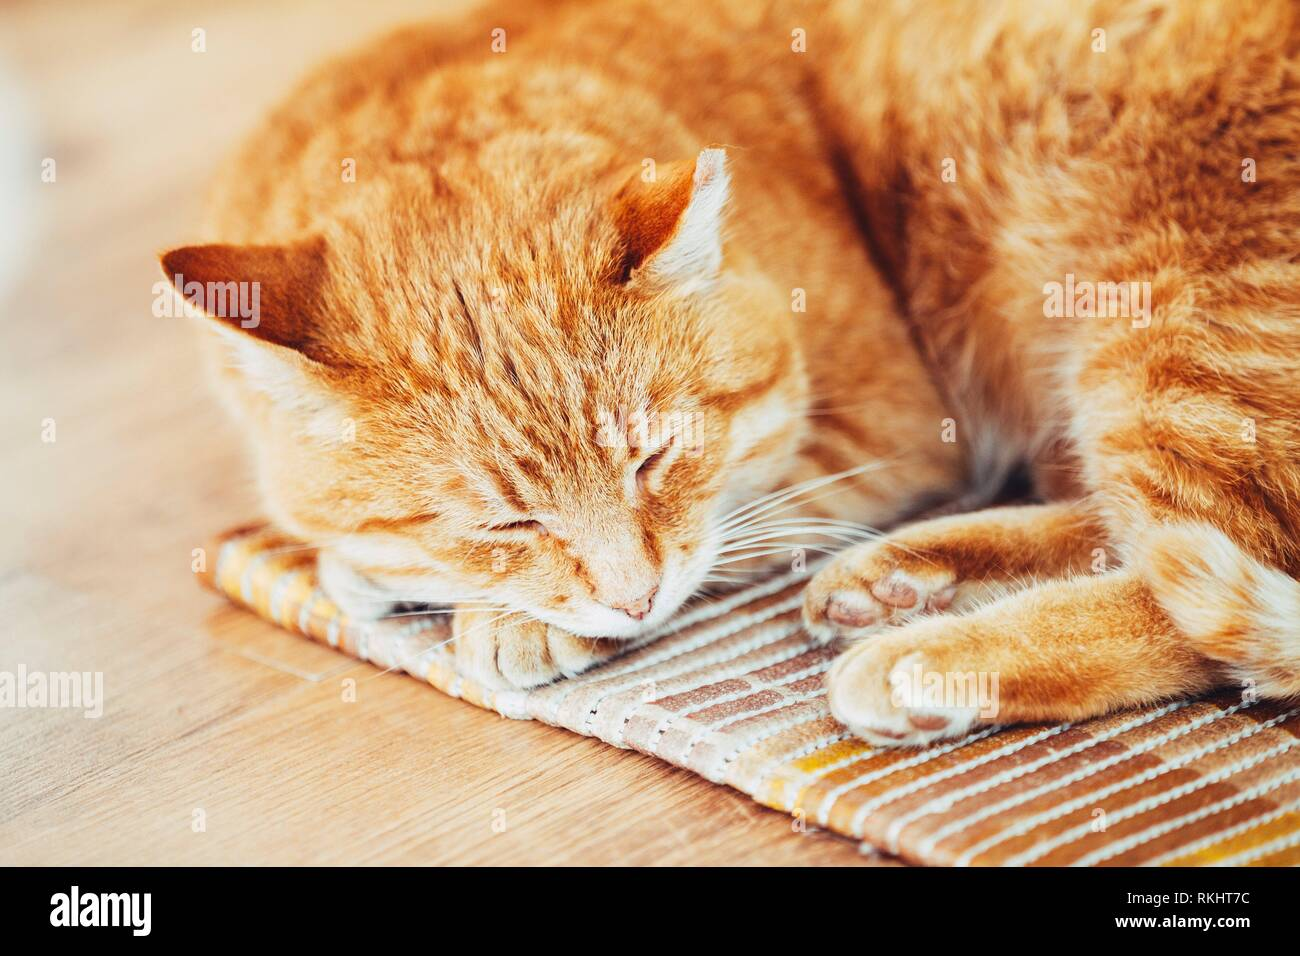 Red Tabby Cat Curled Up Sleeping In His Bed On Laminate Floor. - Stock Image